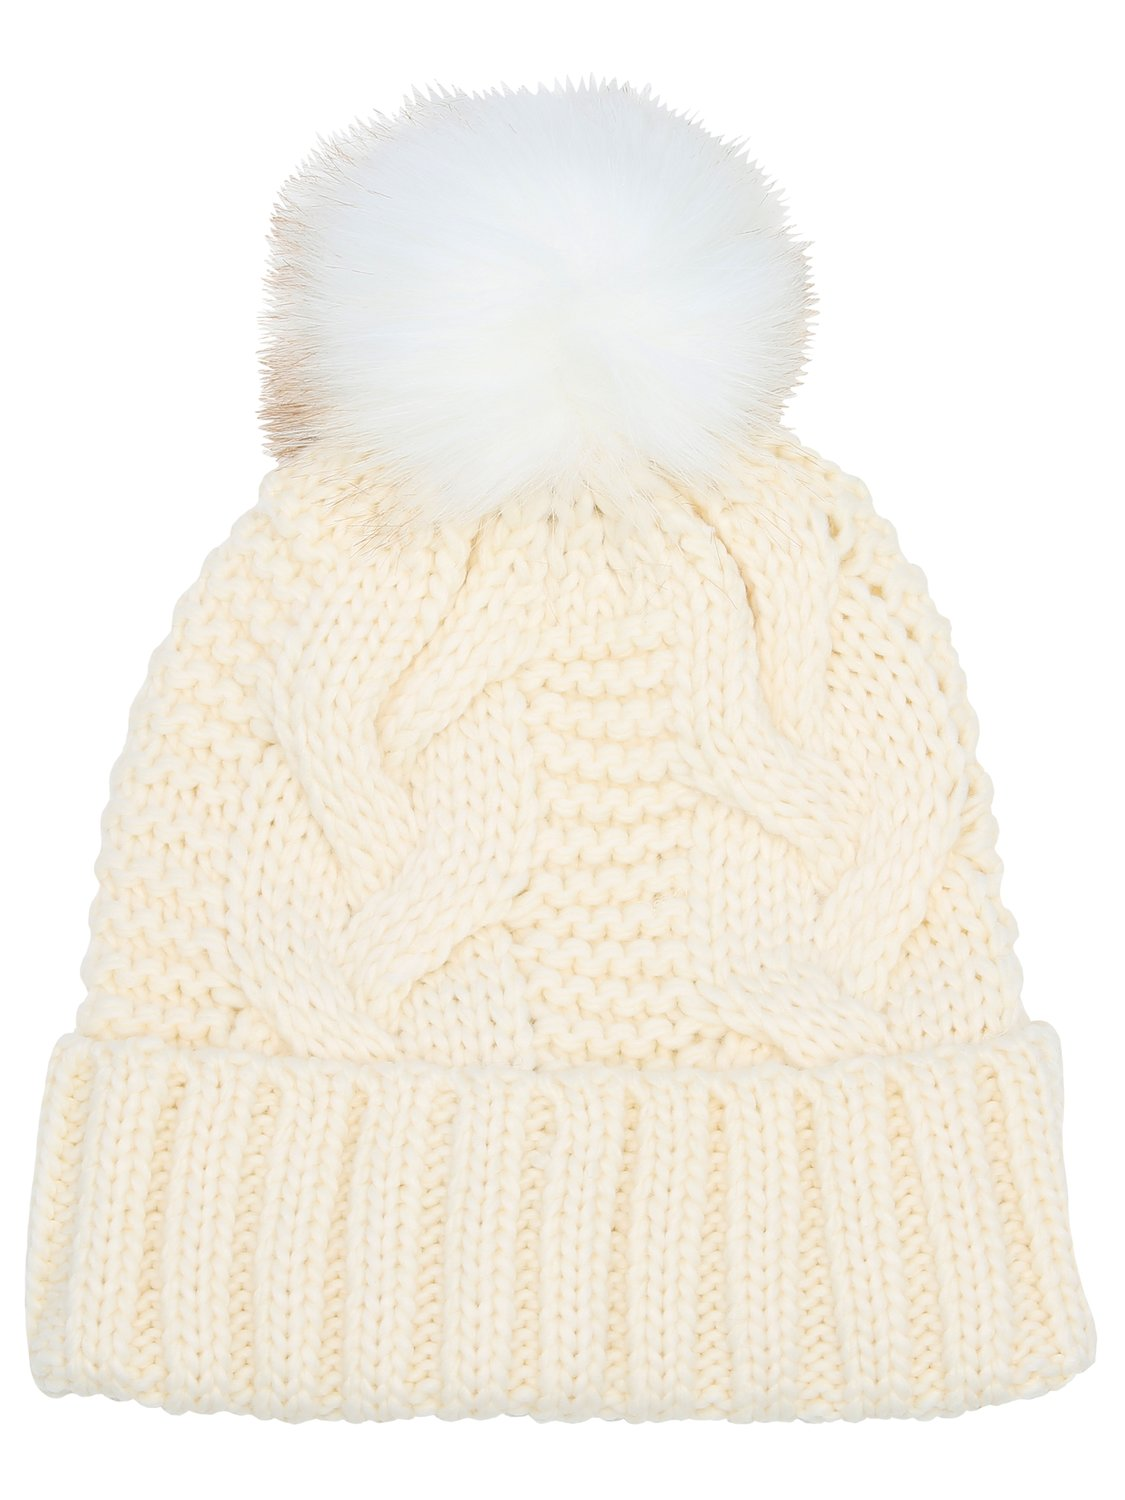 Ladies plain cable knit pom pom hat turn up trim fluffy faux fur pom pom  - Ivory